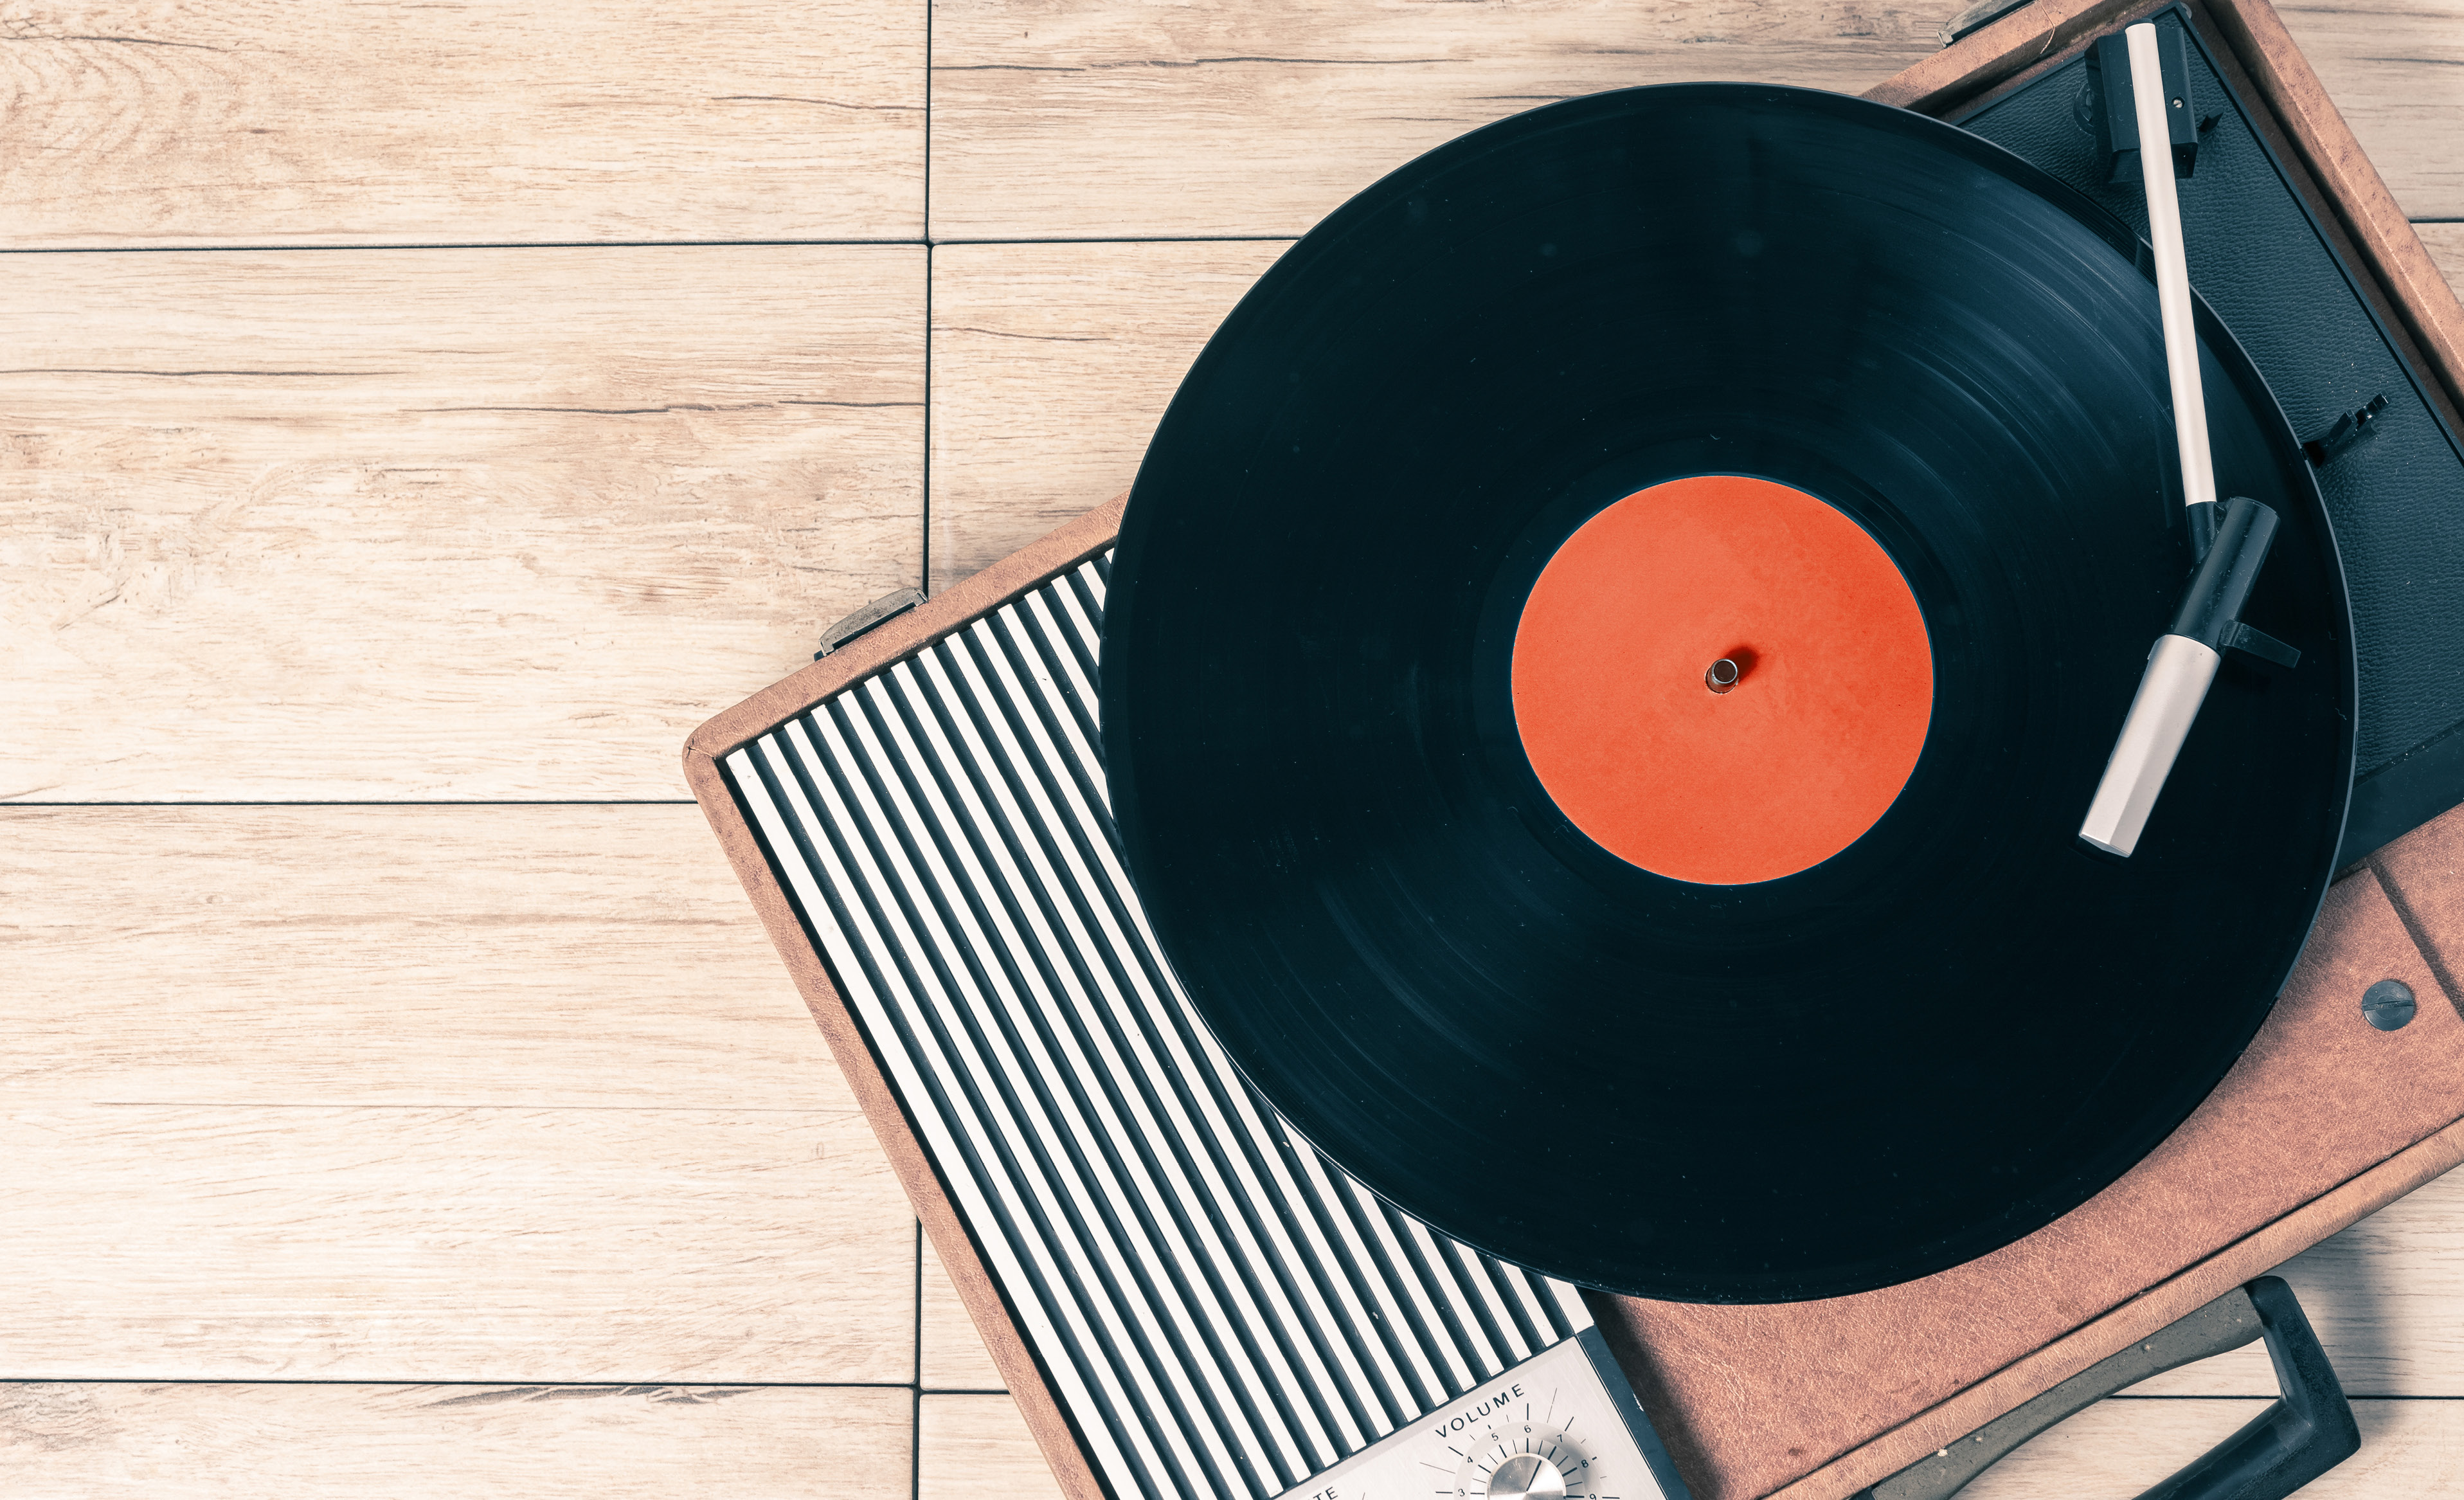 Vinyl revival: get in on the turntable trend